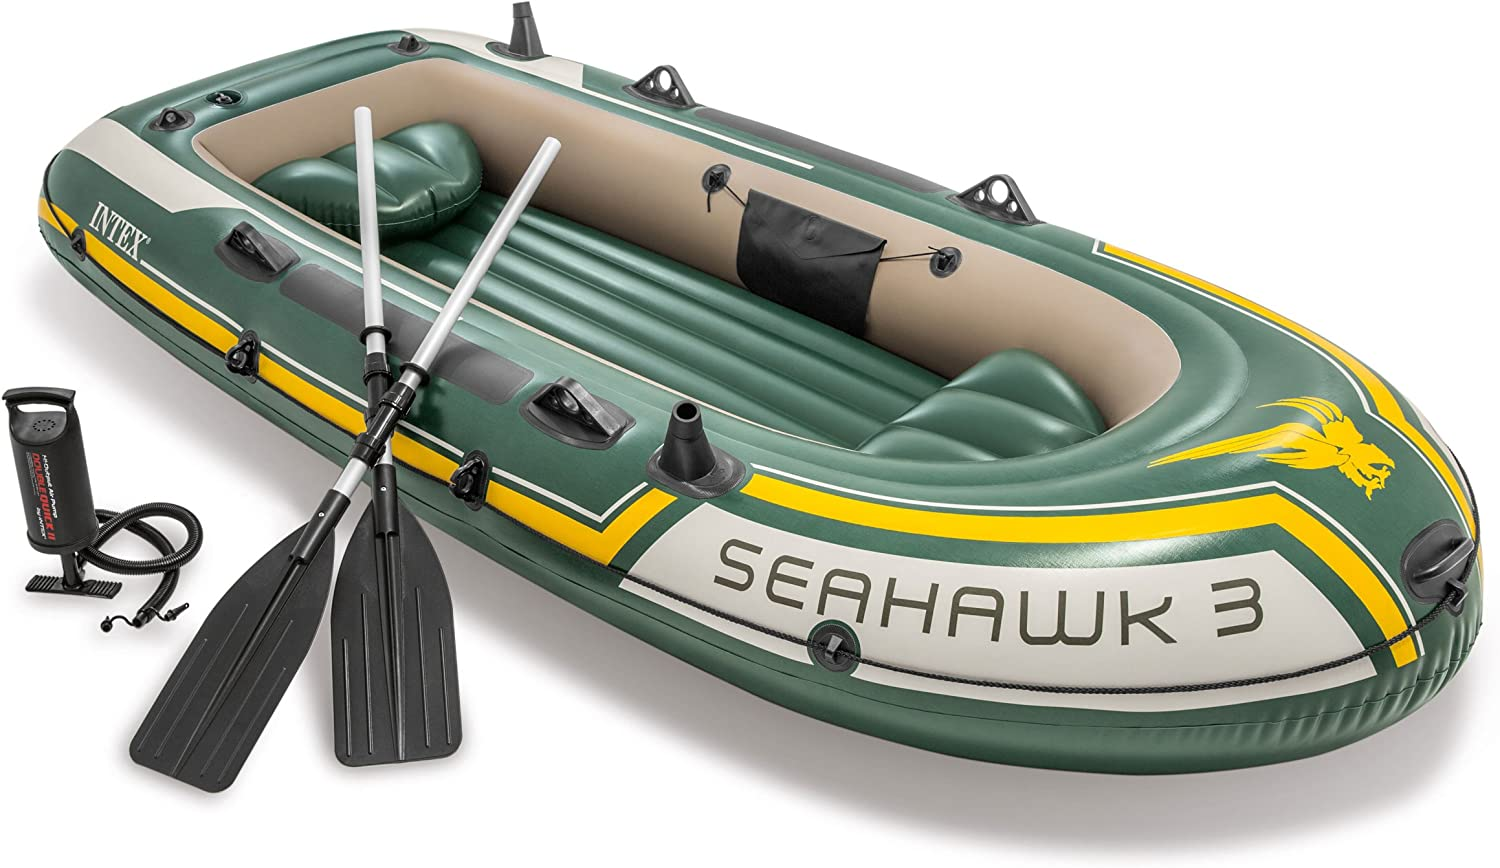 Intex Seahawk 3, 3-Person Inflatable Boat Set with Aluminum Oars and High Output Air -Pump